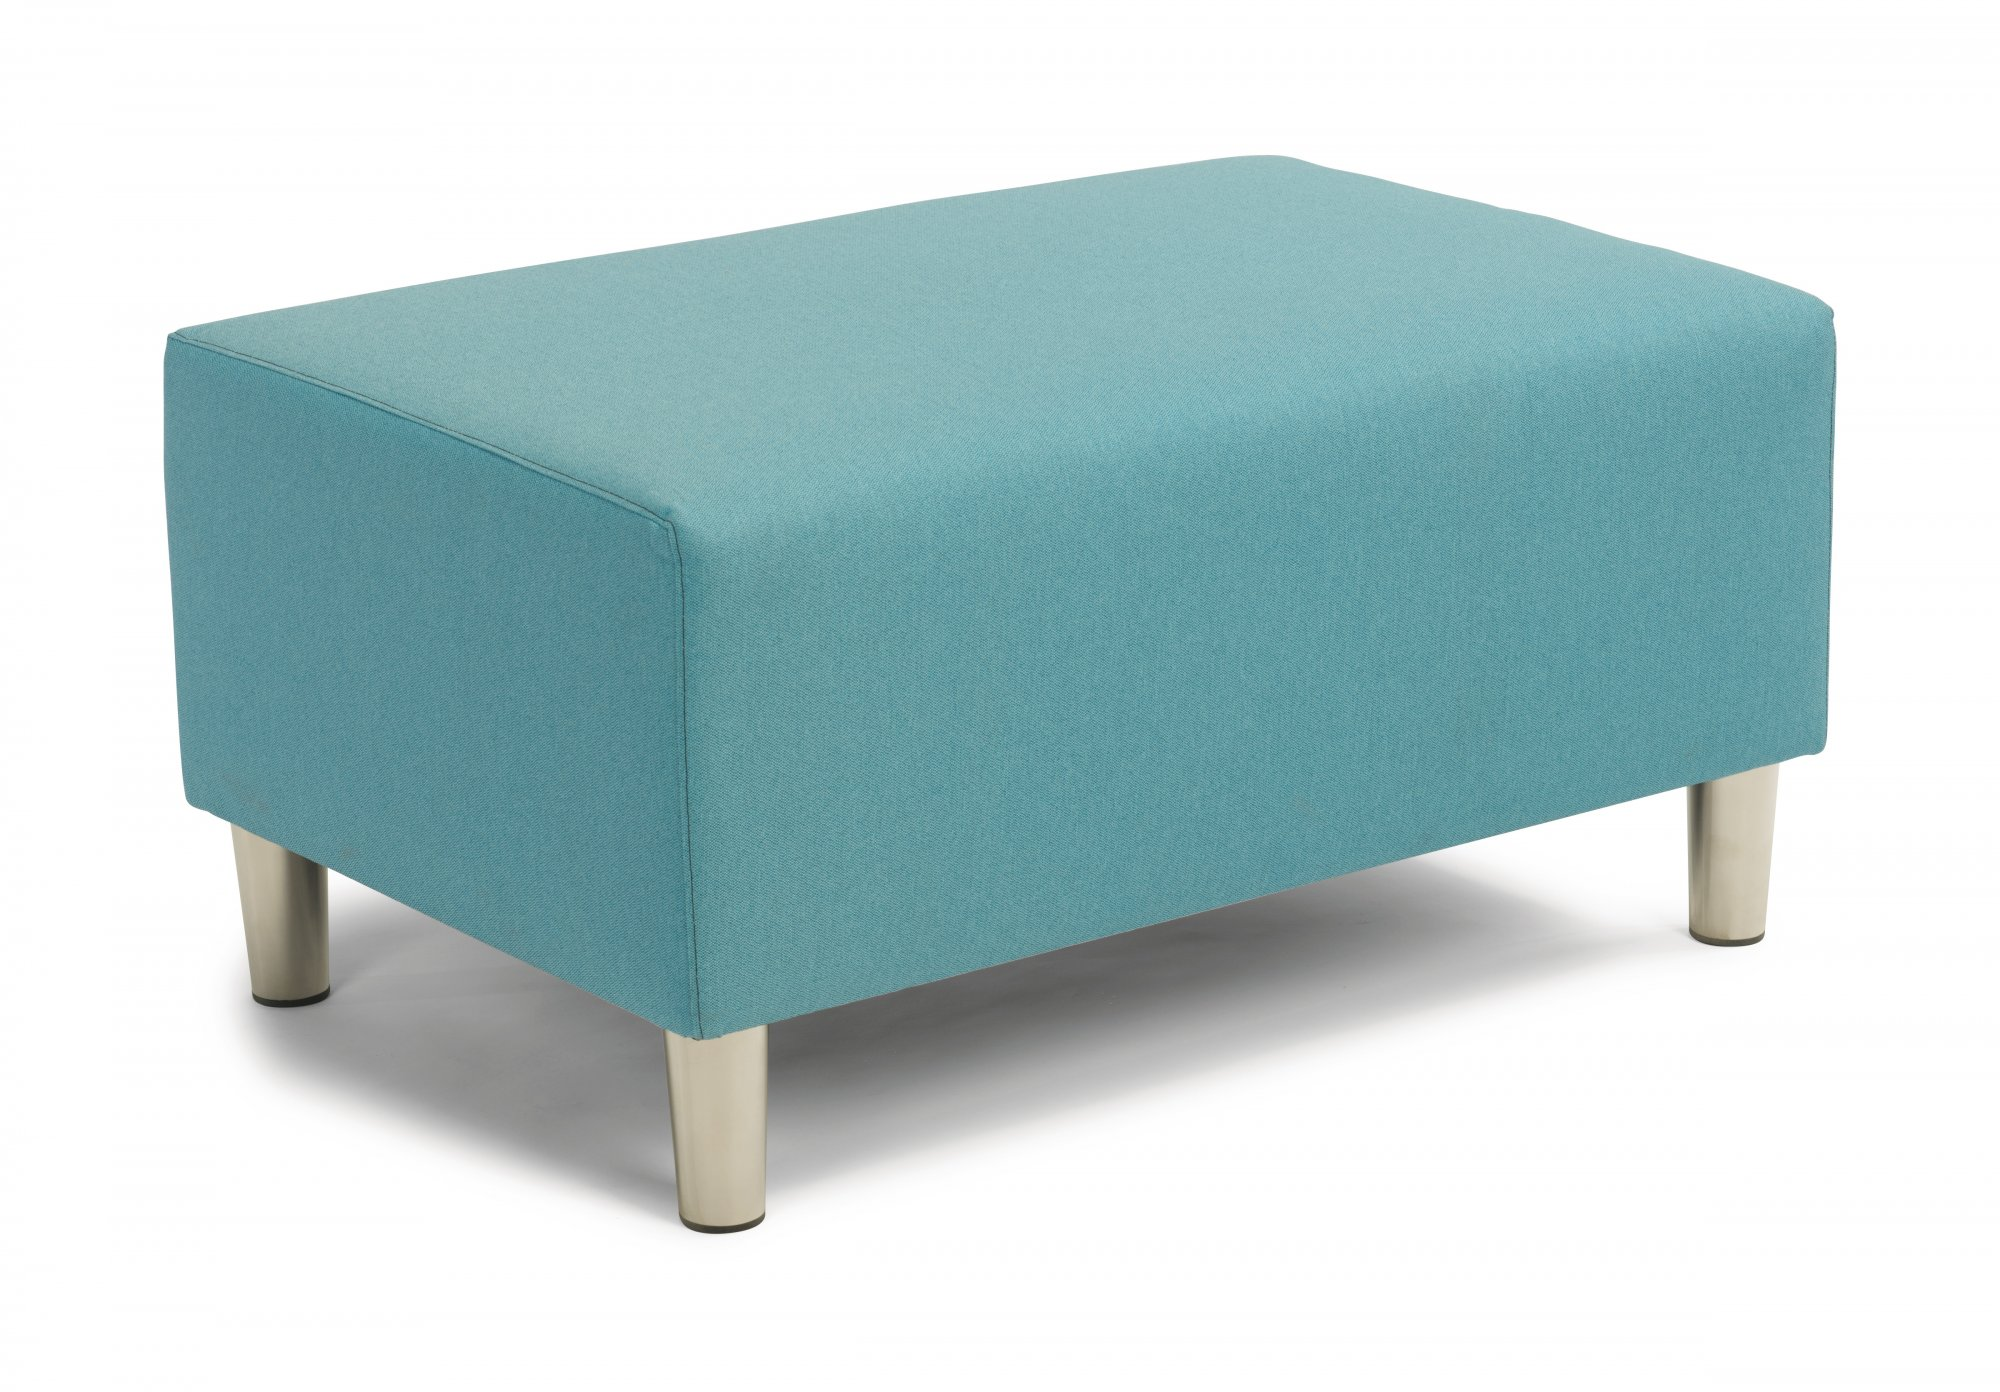 commercial office ottomans  commercial contract ottomans - double ottoman